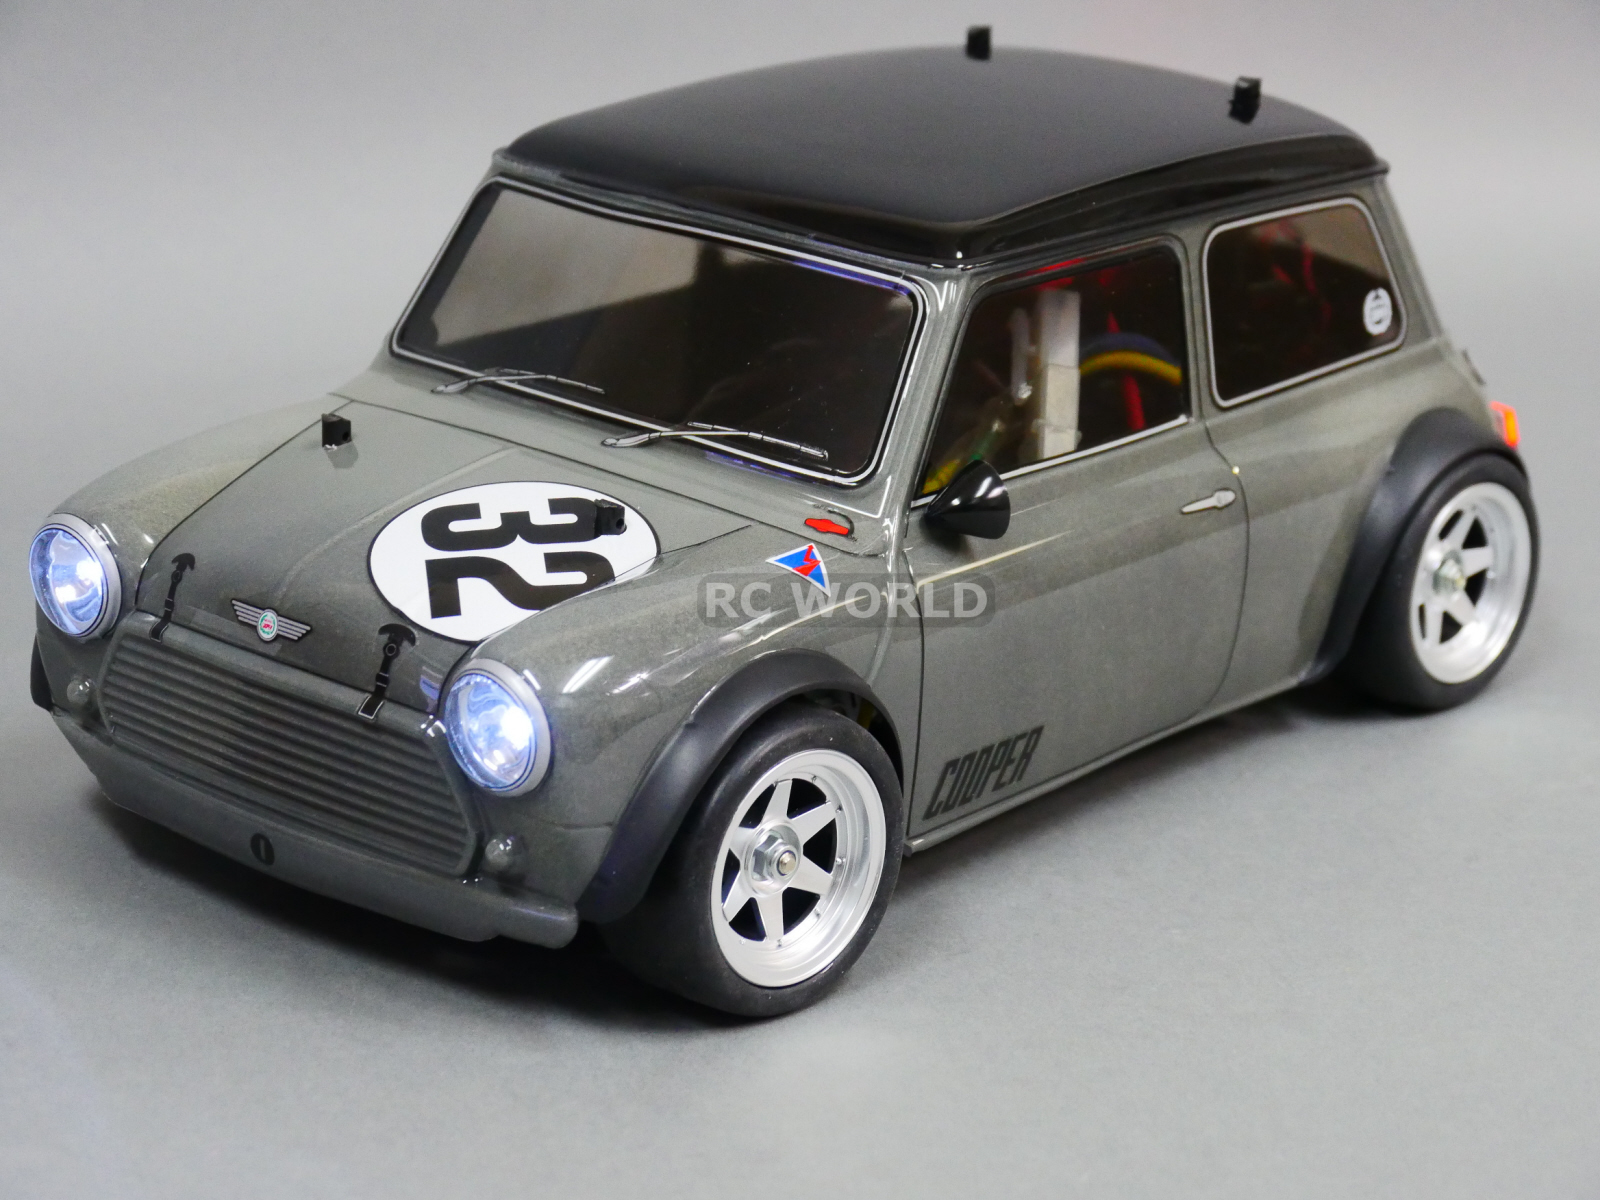 1 5 scale electric rc cars with 182121982134 on Remote Control Gas Powered R age Xt R C Monster Truck 1 5 Scale also Tamiya TA07 Pro Chassis 110 RC Model Car Electric Road Version 4WD Kit also Tamiya 58324 110 Rc Volkswagen Racetouareg Dakar Rally P 3400 as well Tamiya Tb 05 Pro Chassis Kit in addition Rc Bus.